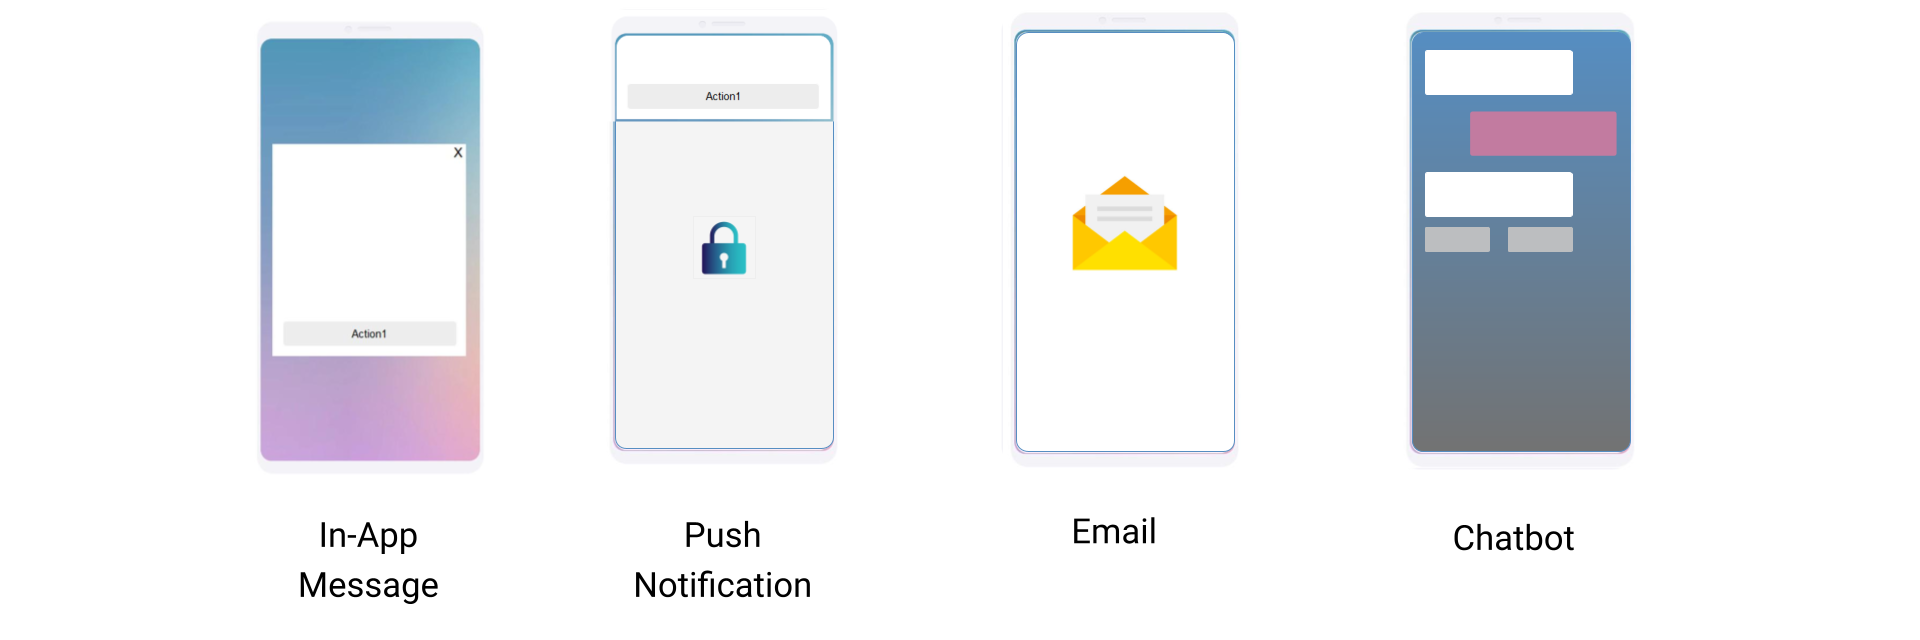 In-App Message vs. Push Notification, Email, and Chatbot